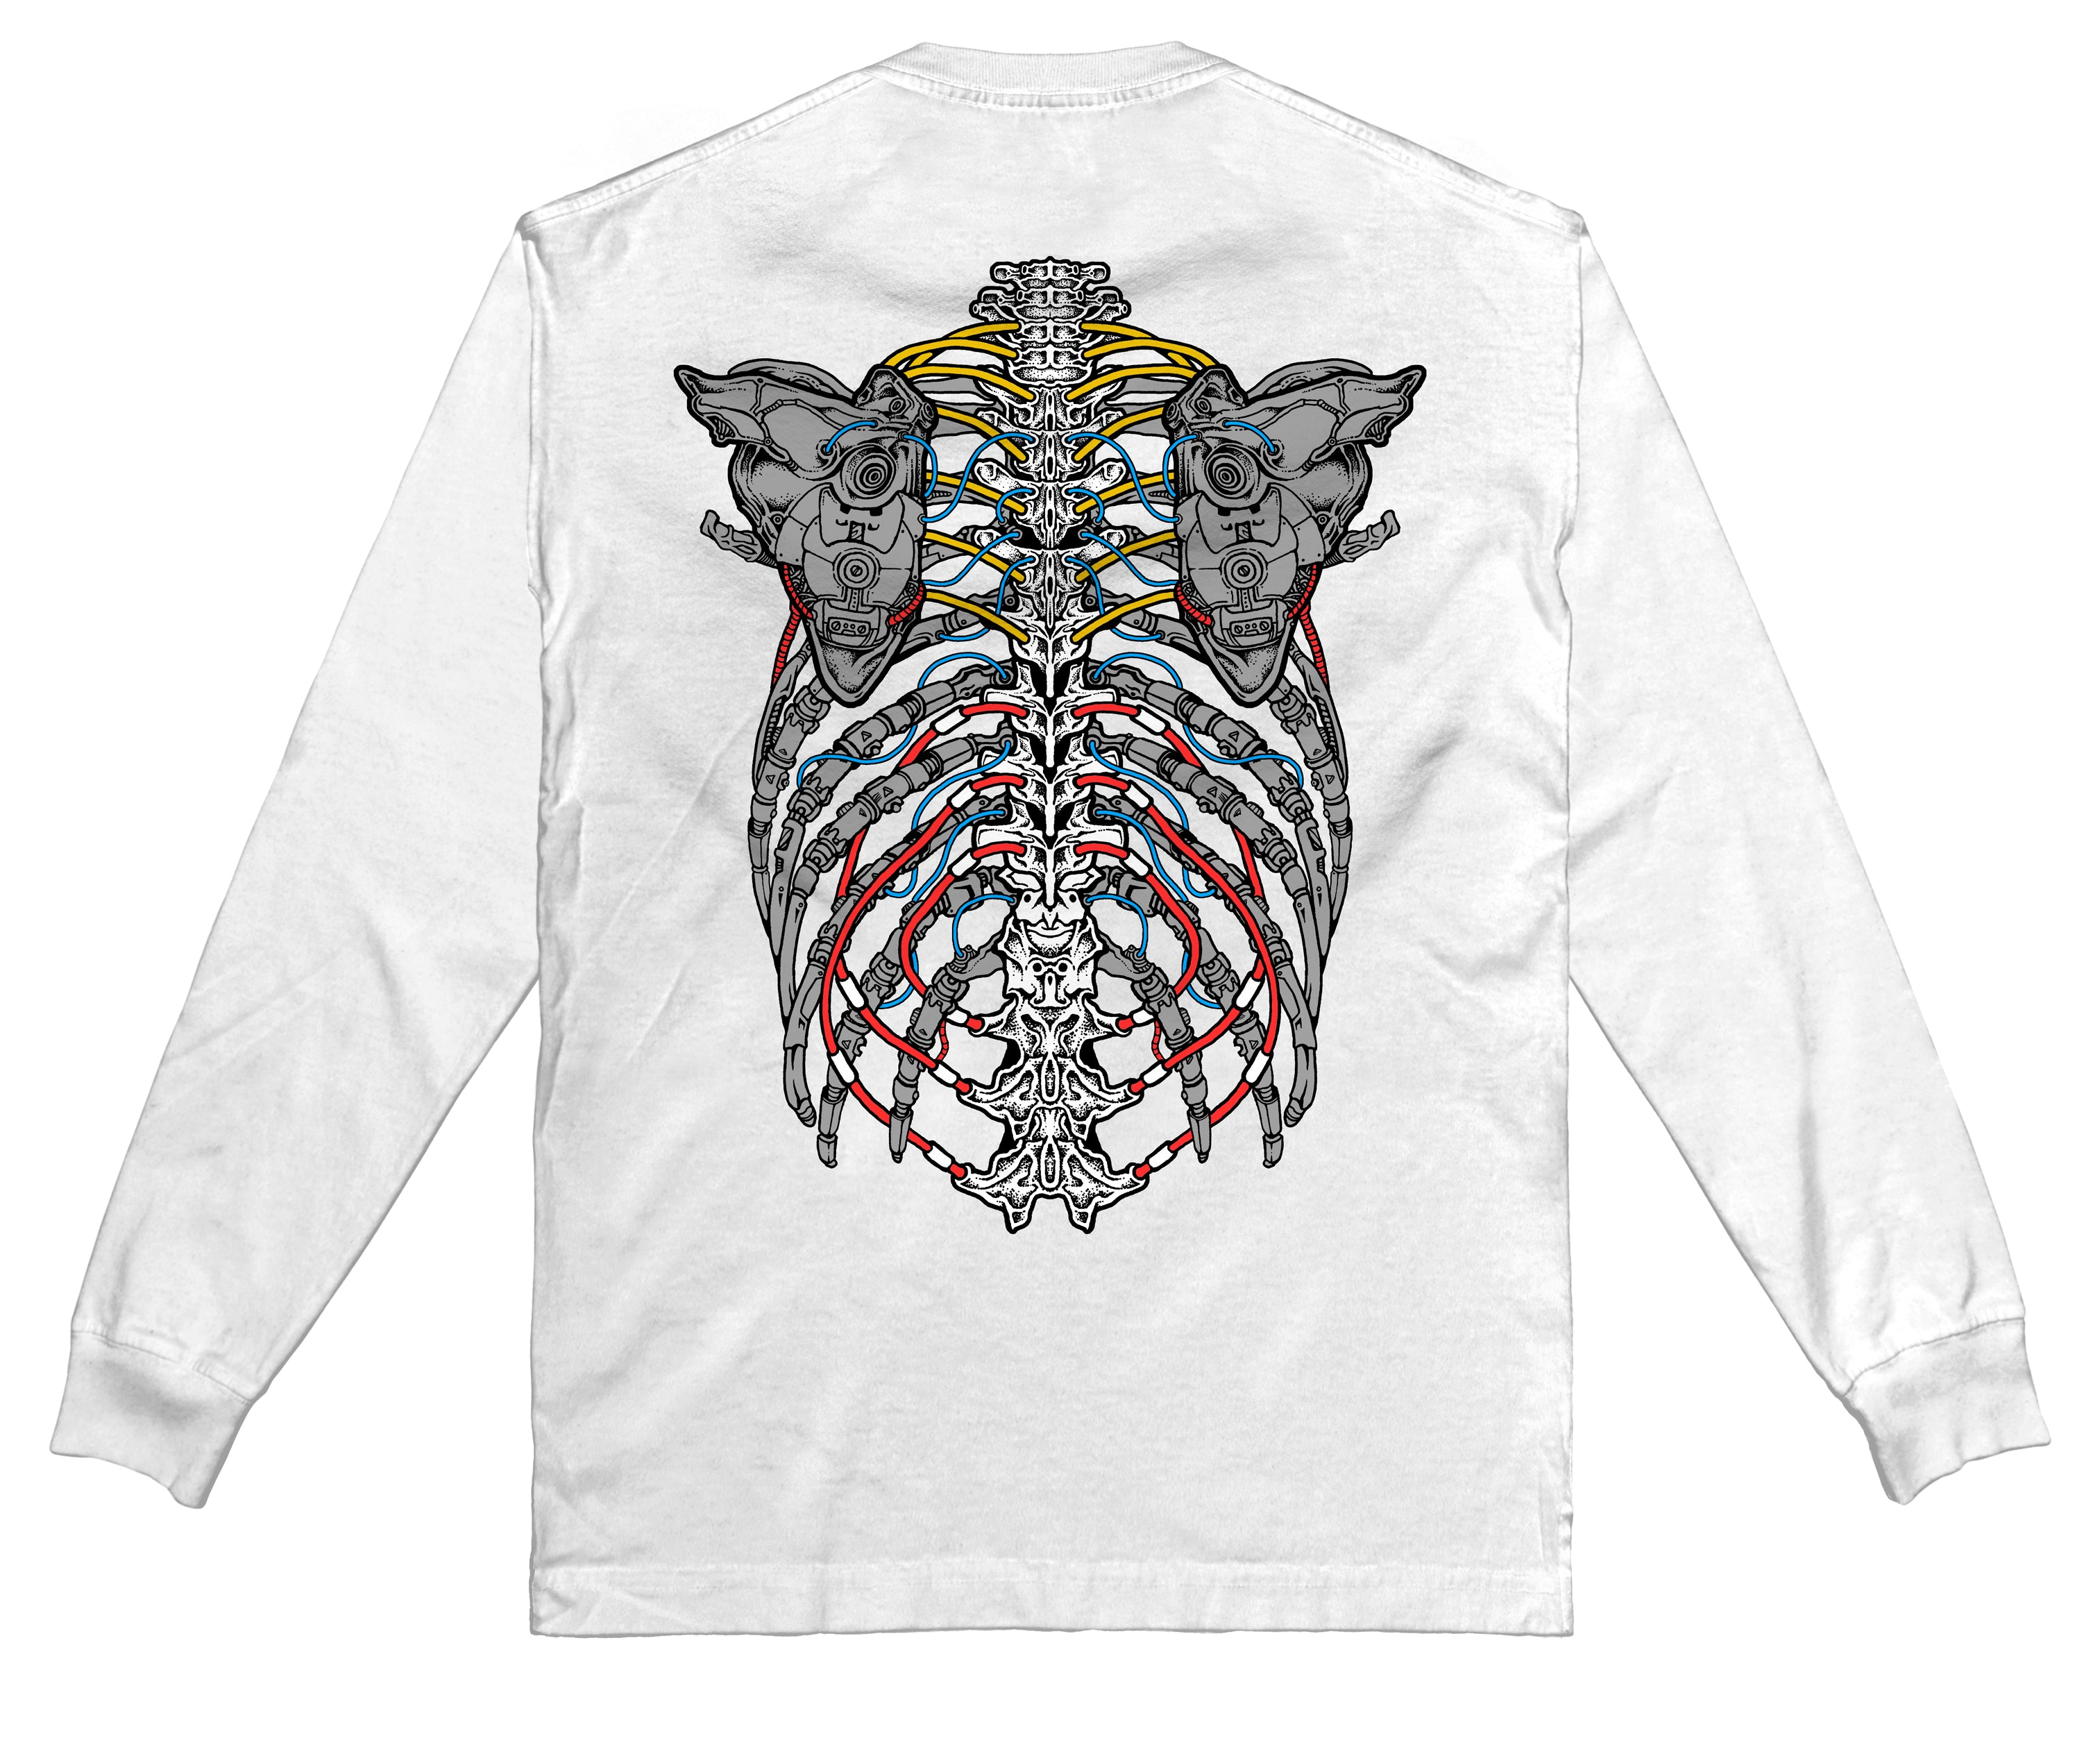 EXO - Long Sleeve (White) - RIPNRPR